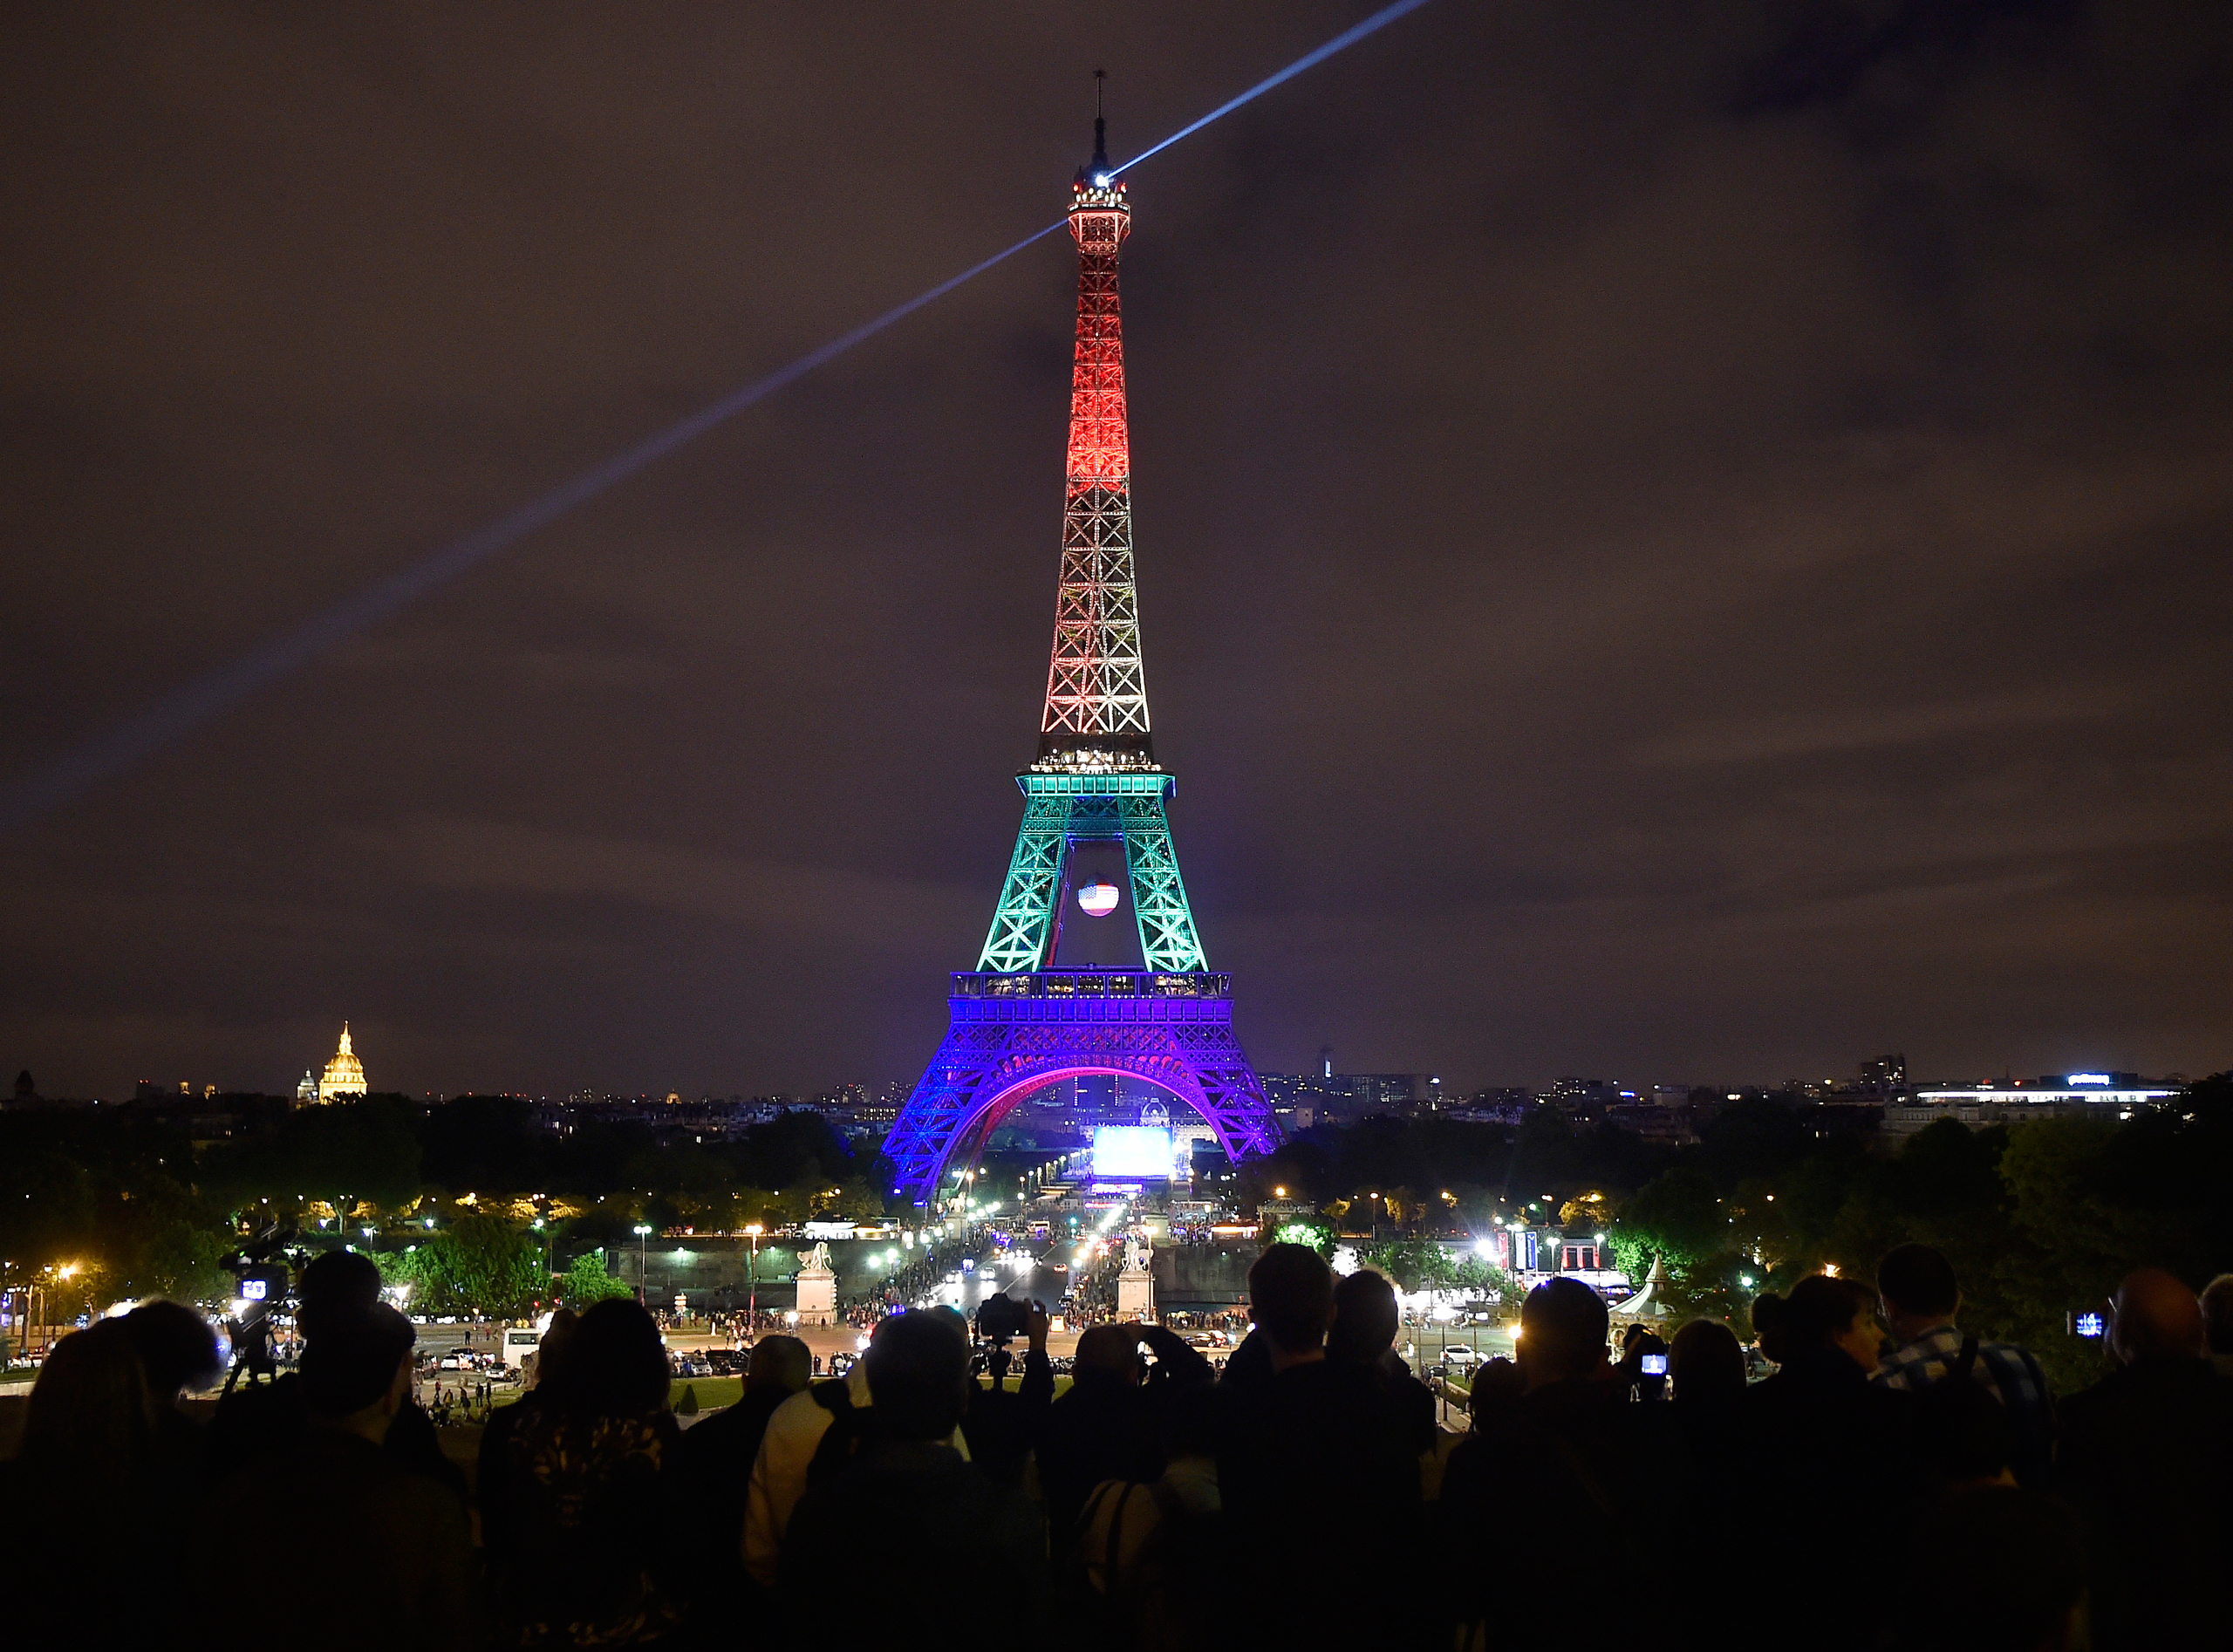 - Orlando Shooting: See The Eiffel Tower Lit Up For Victims Time